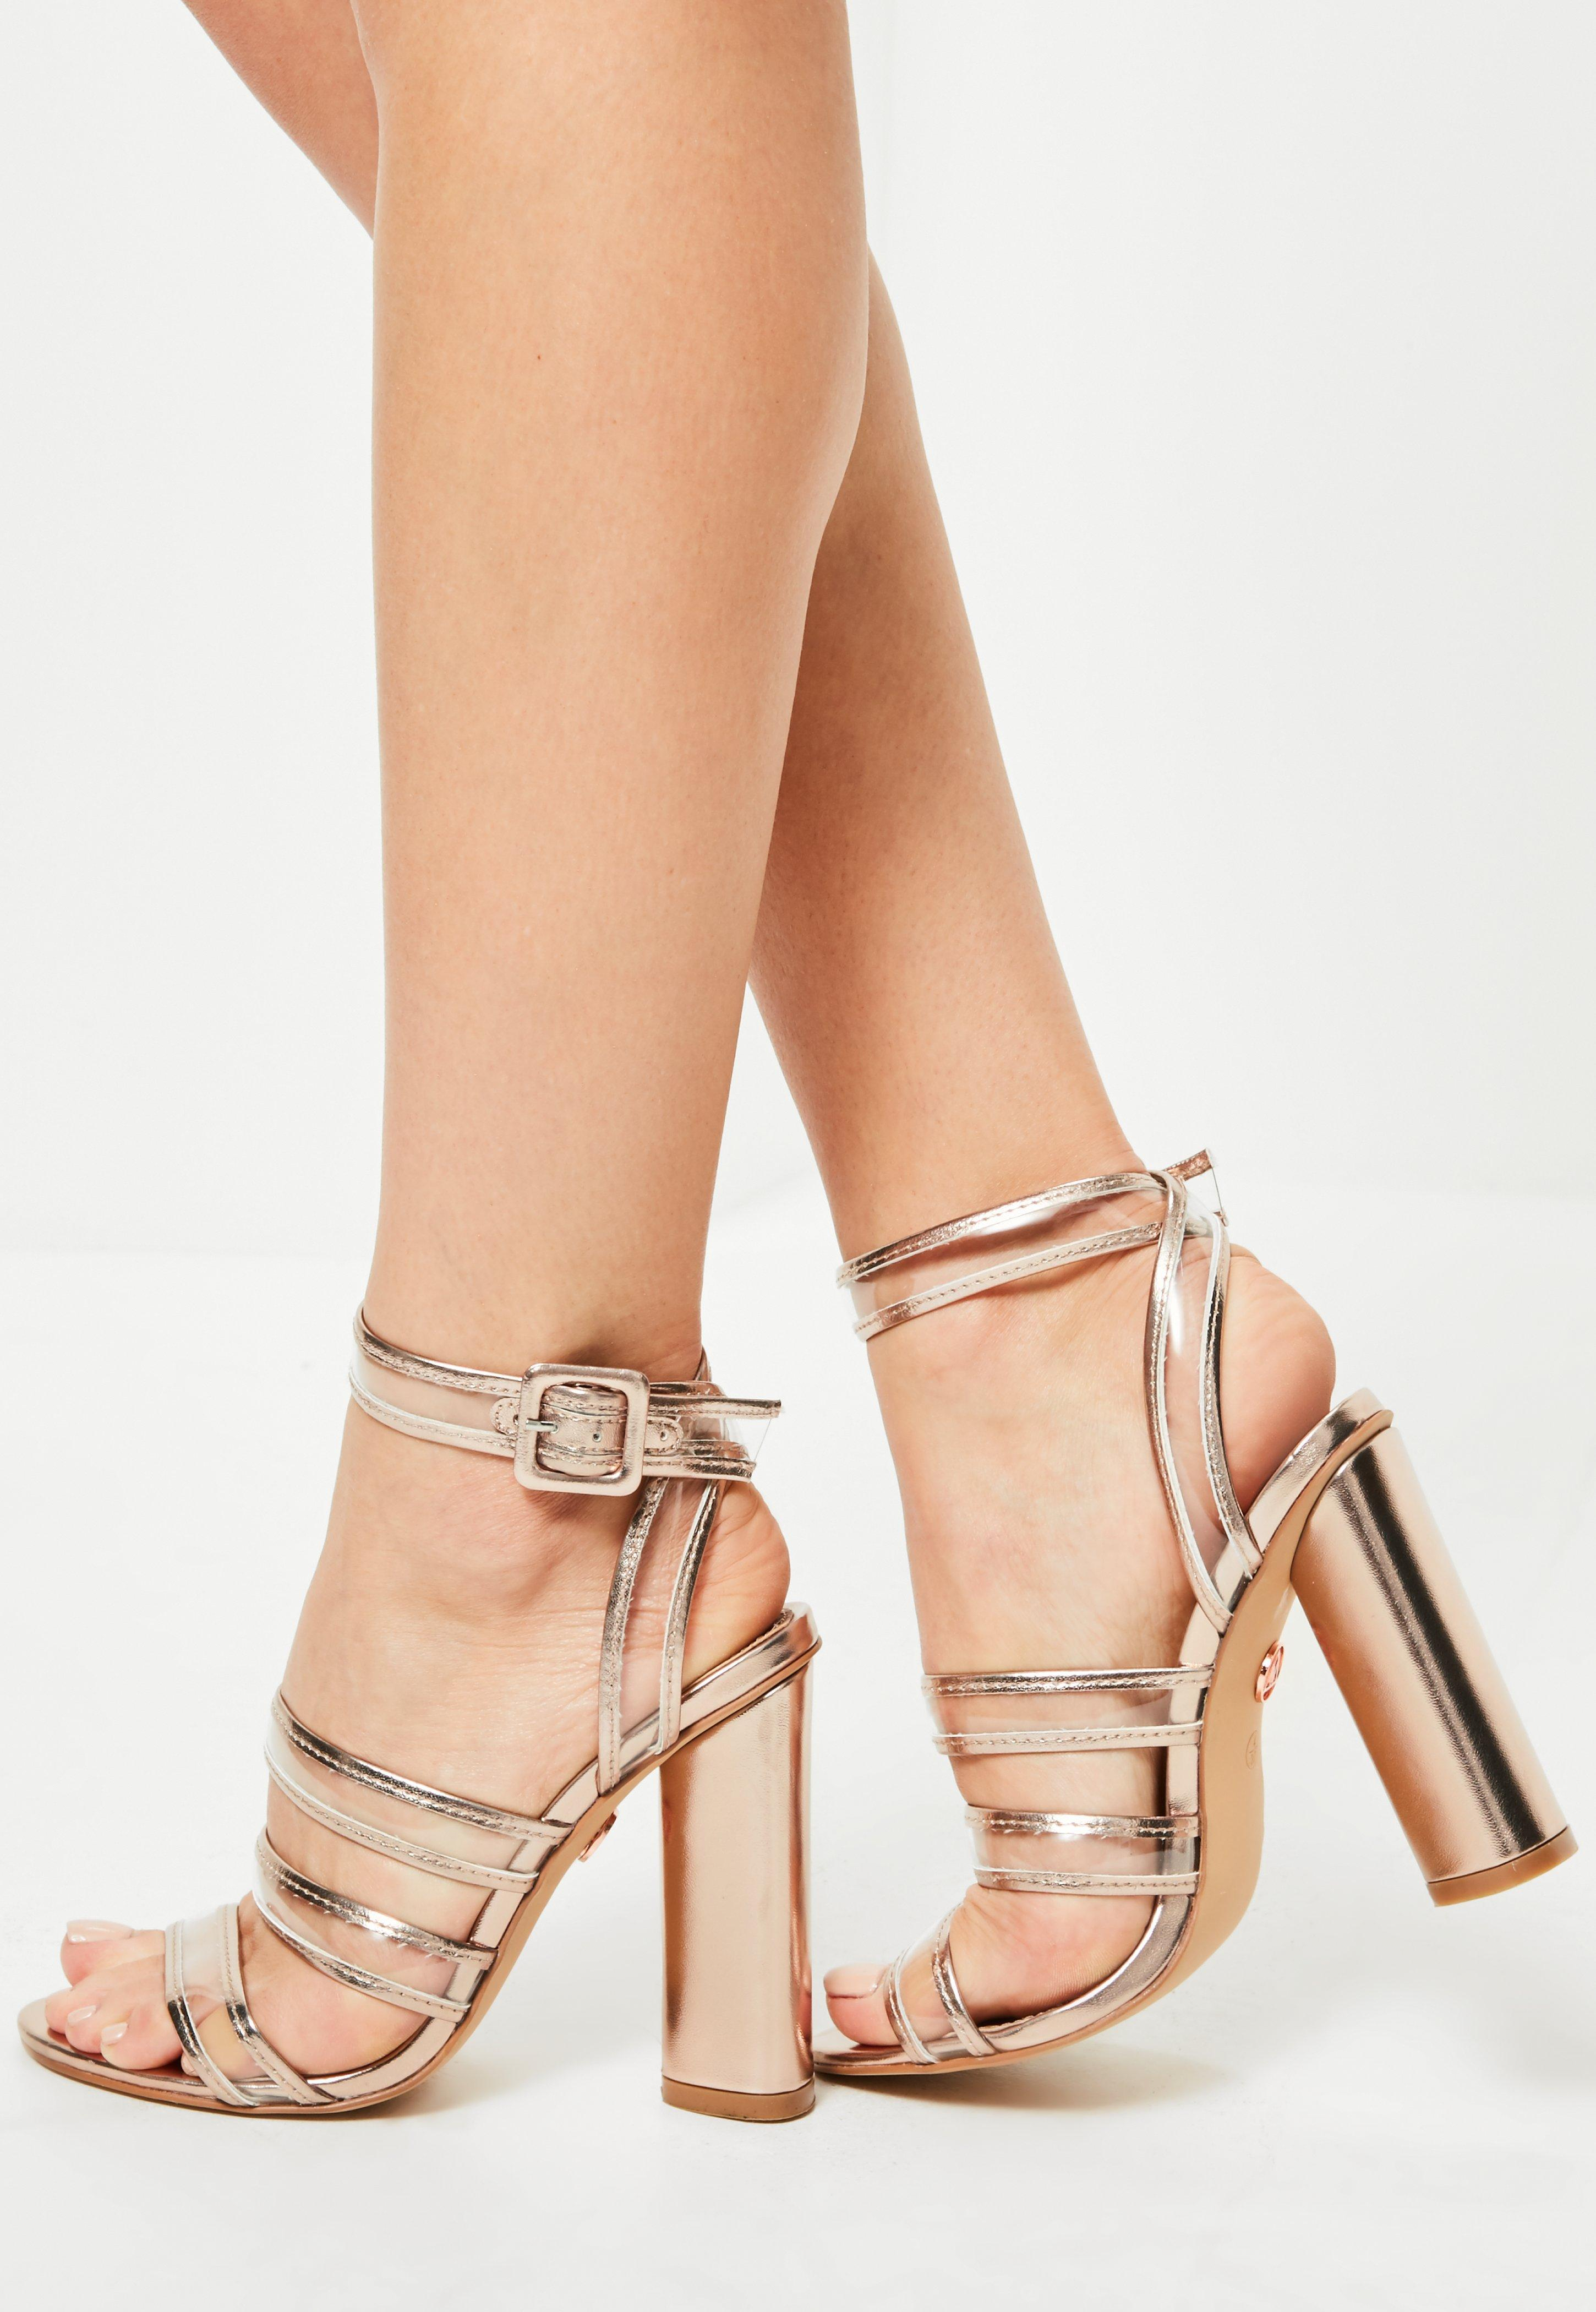 fed77600a76 Lyst - Missguided Rose Gold Clear Multi Strap Block Heeled Sandals ...